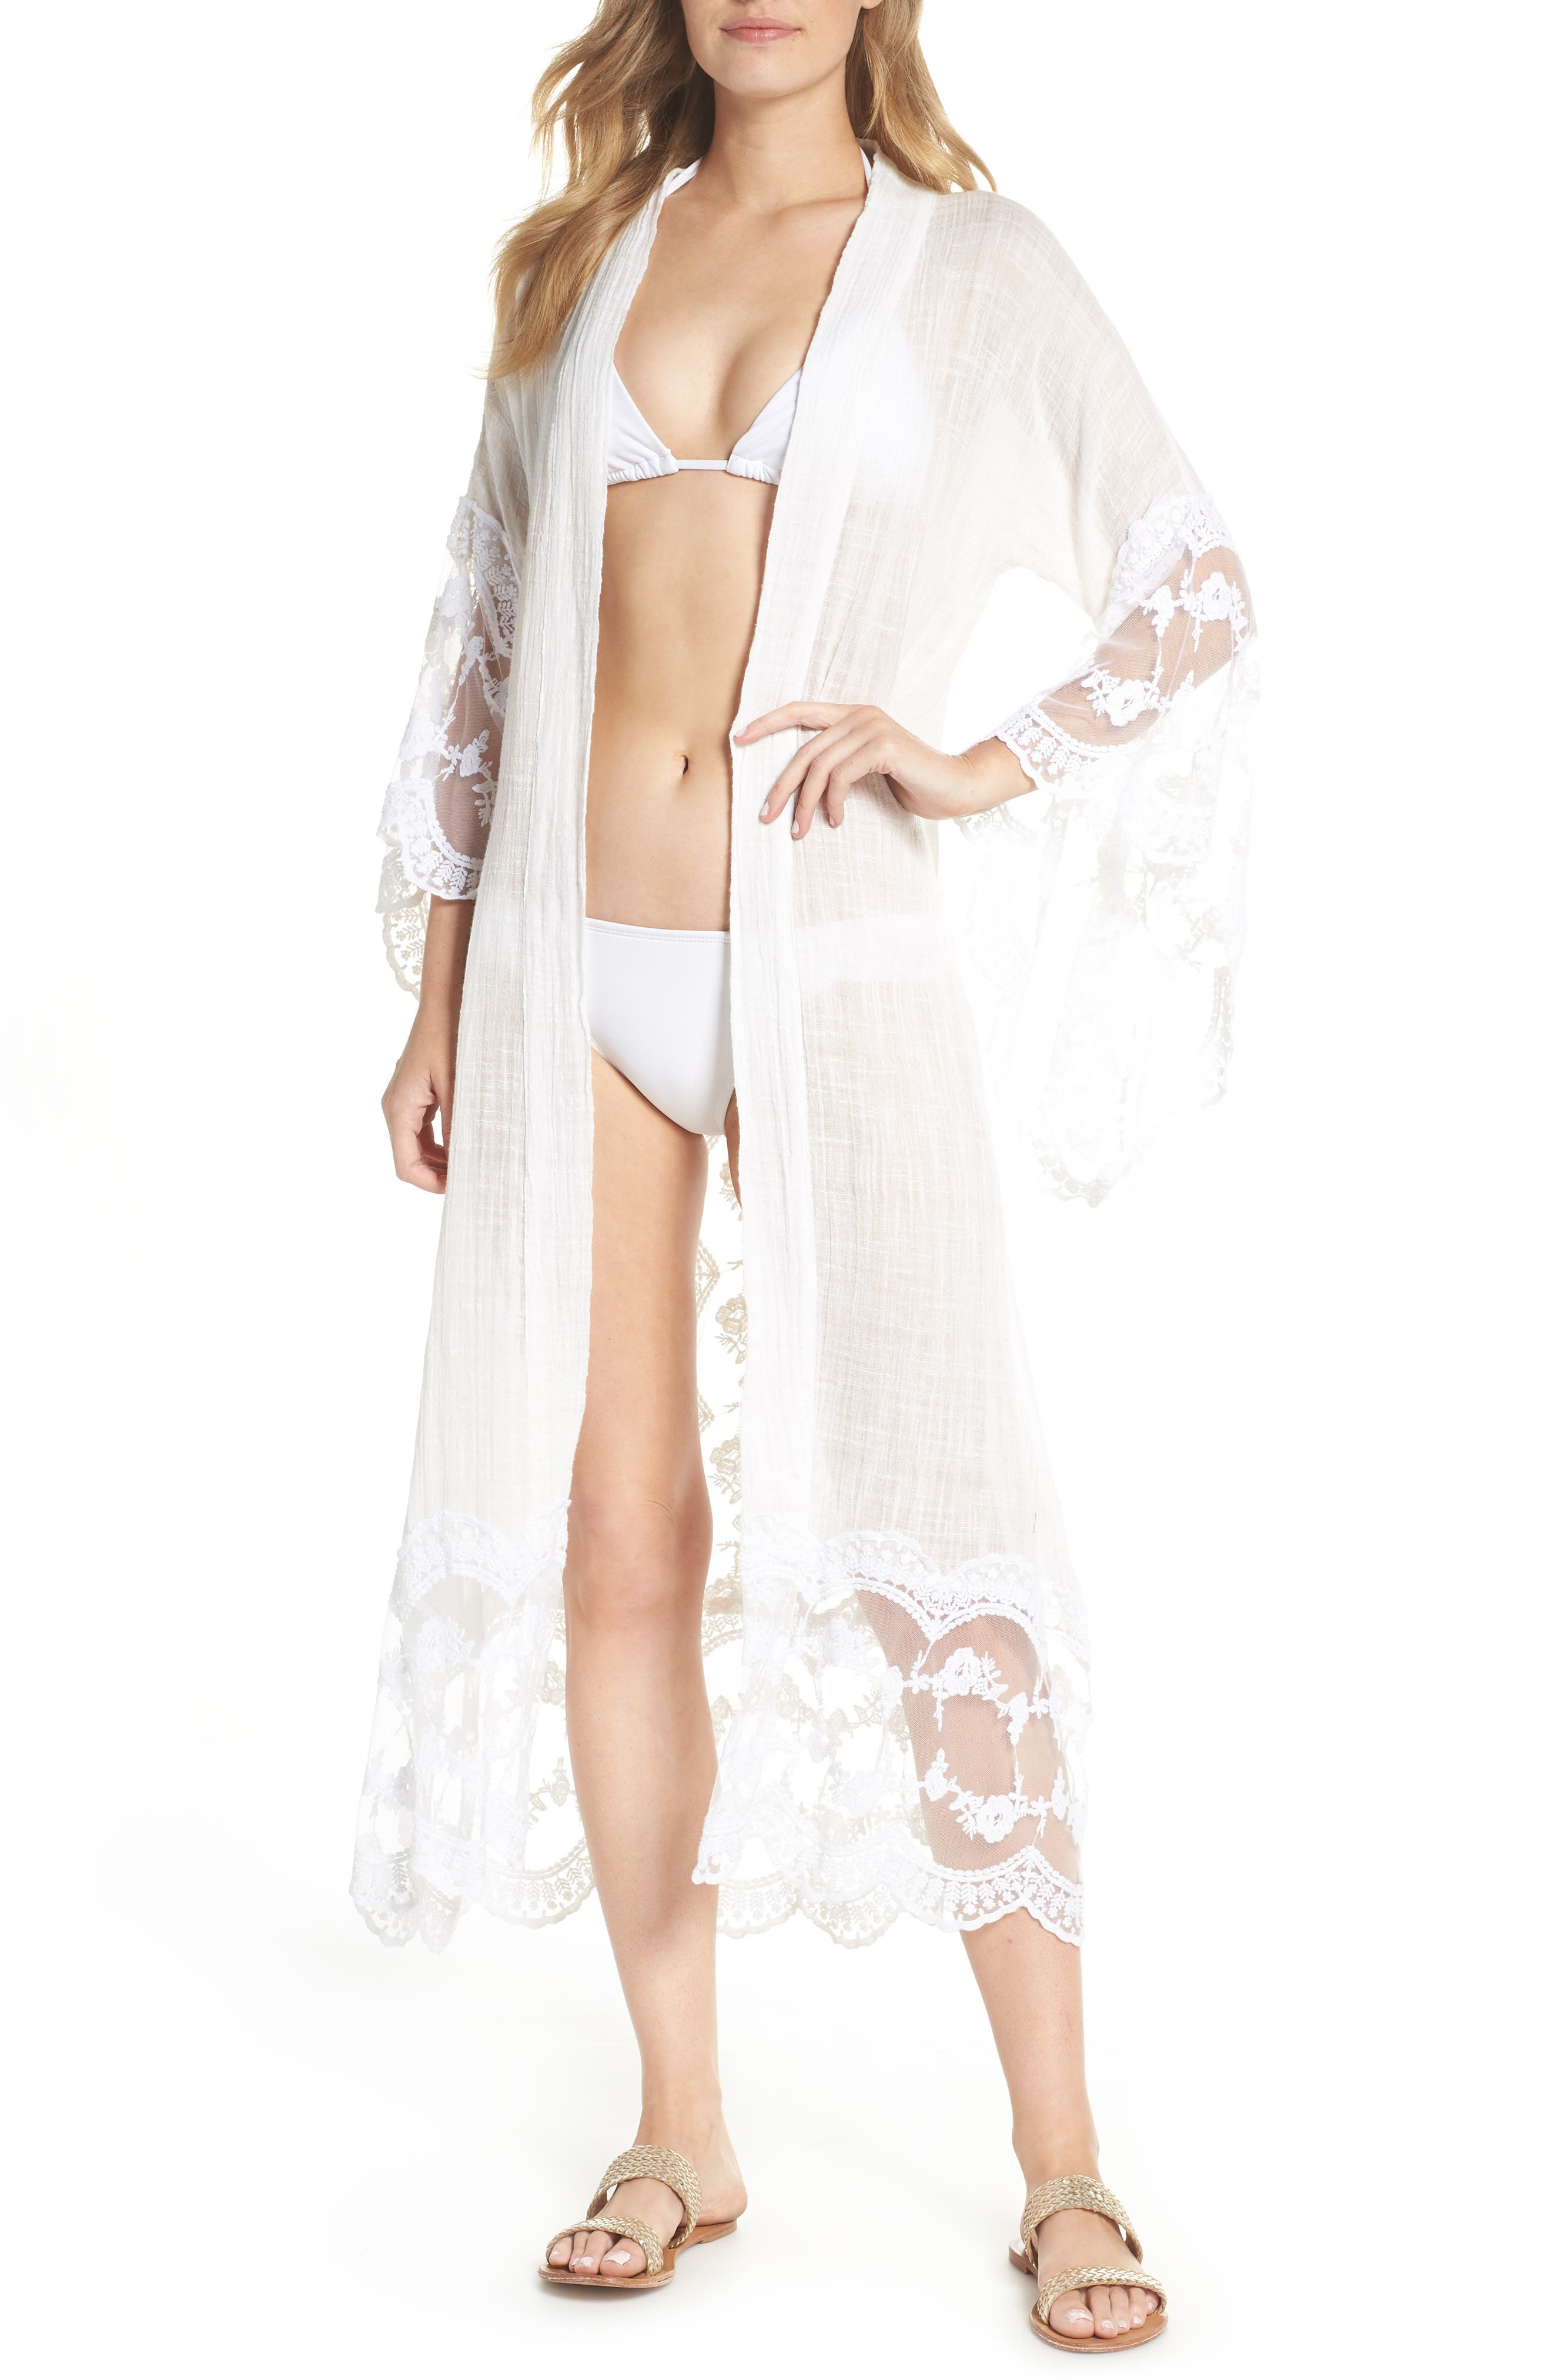 MUCHE ET MUCHETTE Jaus Open Front Long Cover-Up in White